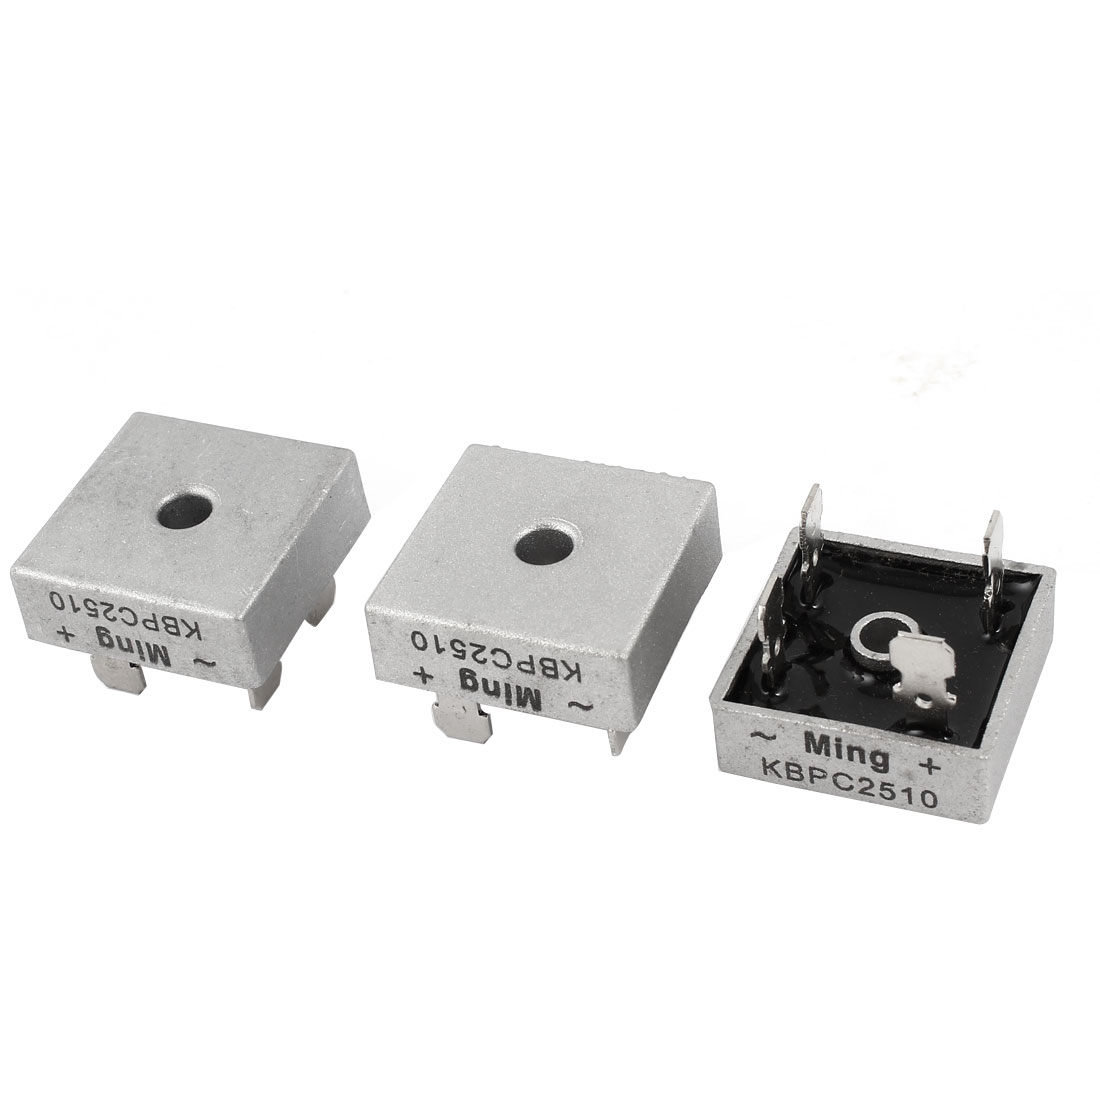 3 Pcs KBPC2510 Single Phase Diode Bridge Rectifier 25A 1000V